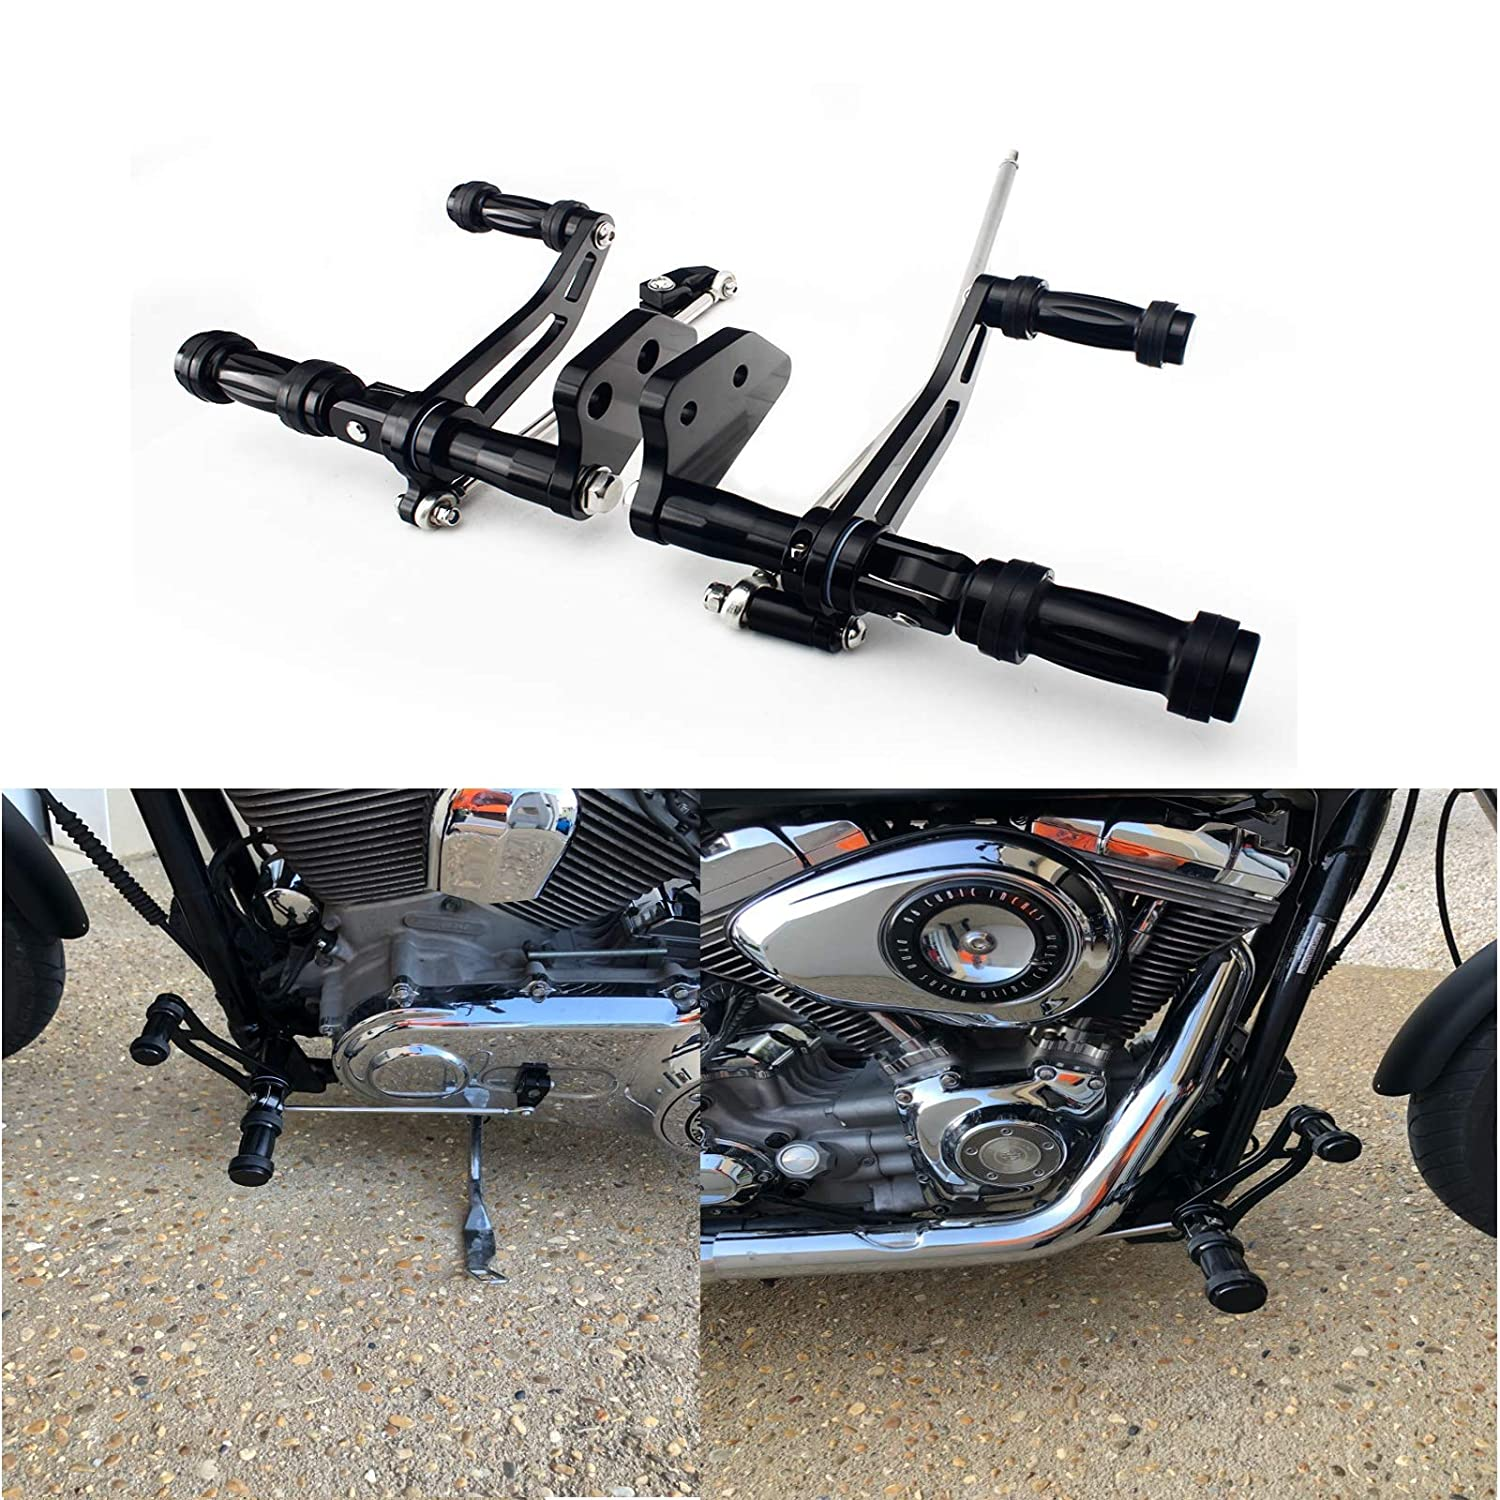 Linkage for Harley Davidson Dyna Street Bob Lower Rider Super Glide TARAZON CNC Forward Controls Kit Footpegs Levers